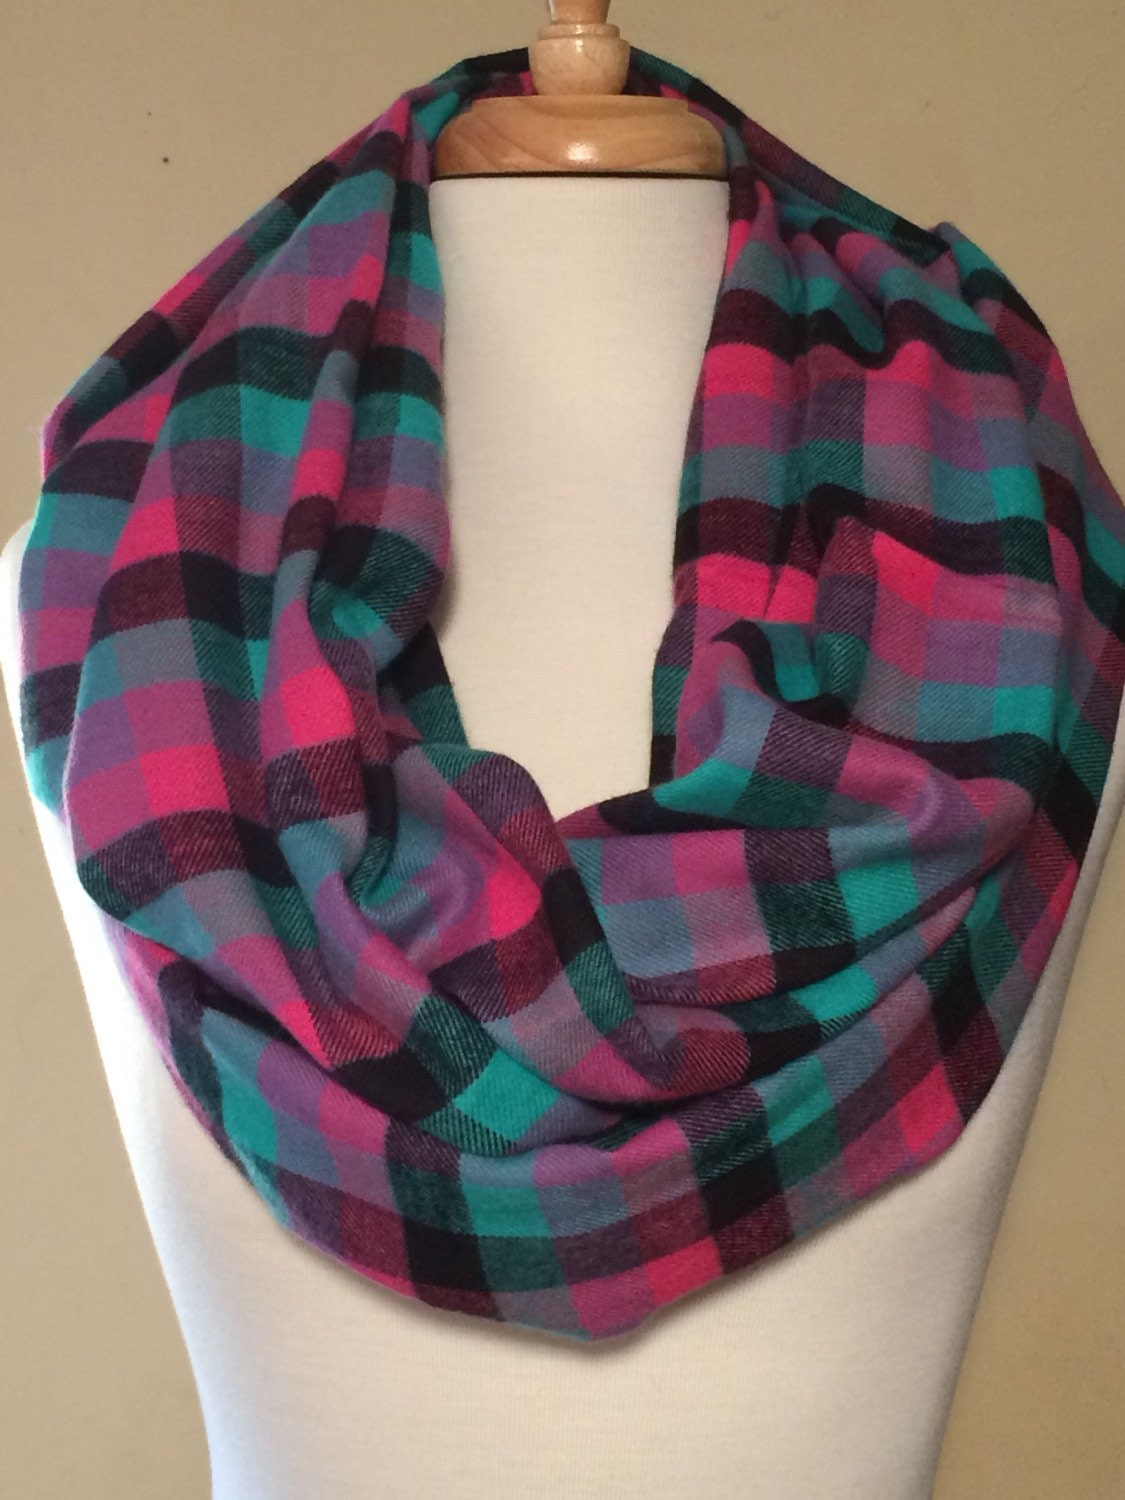 flannel scarf multi colored scarves loop scarfs soft cozy